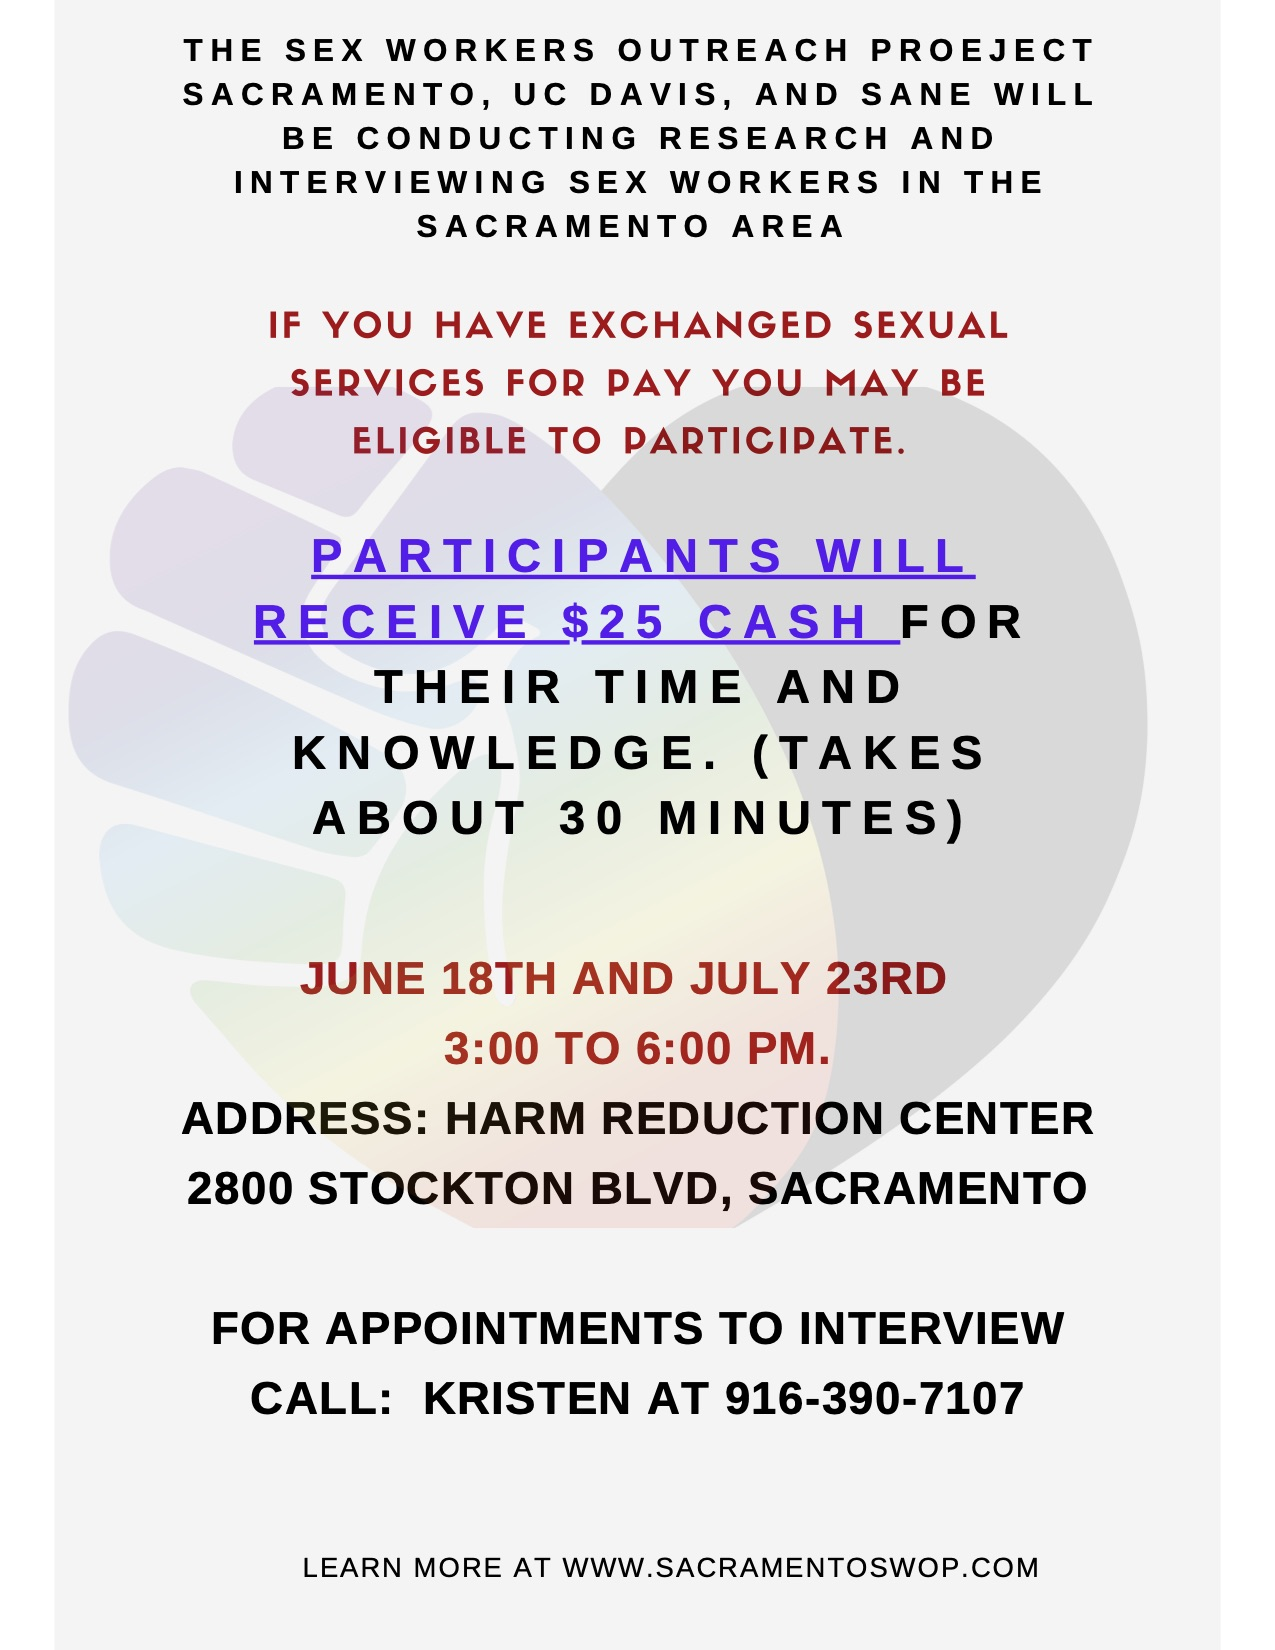 Information on Paid Interviews of Sex Workers